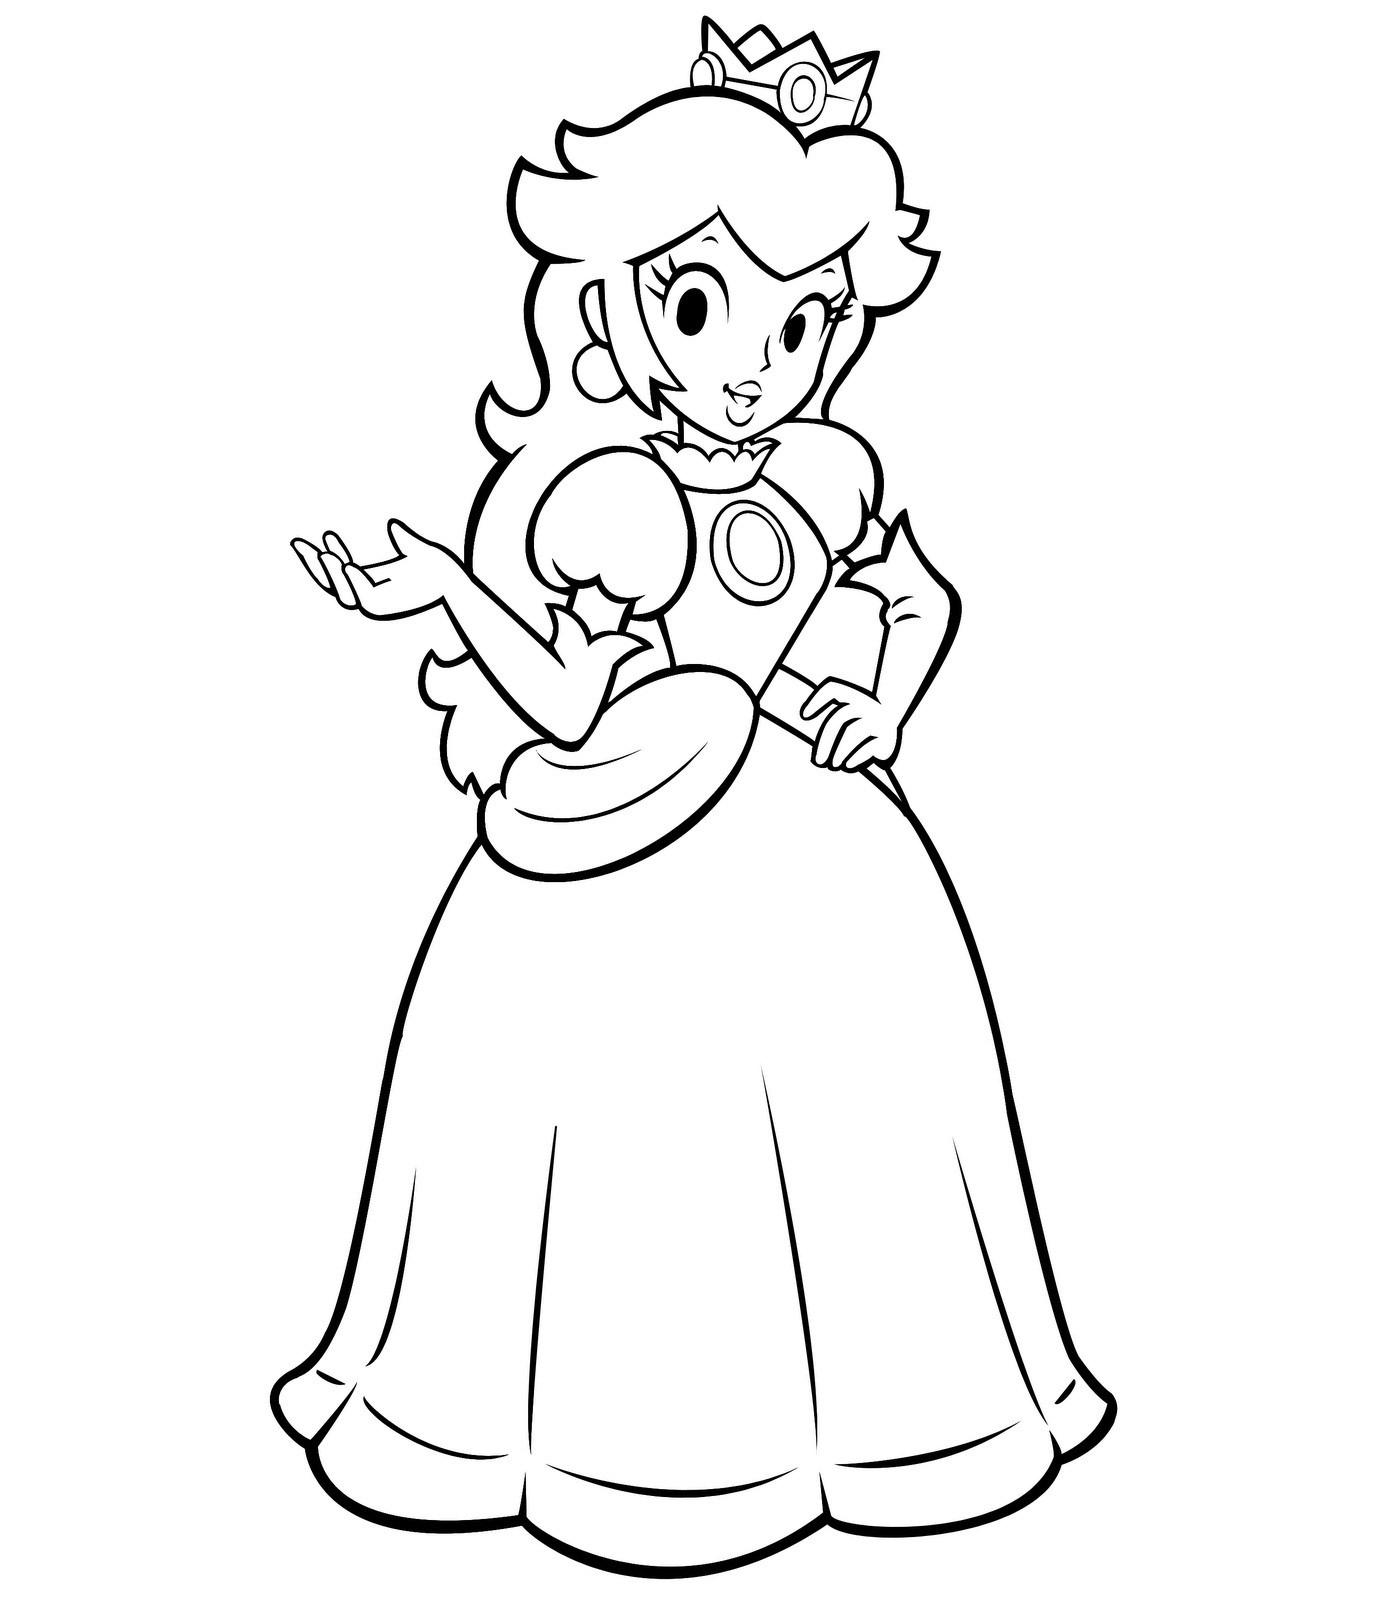 Princess Peach clipart coloring page Kawaii  Pages out food